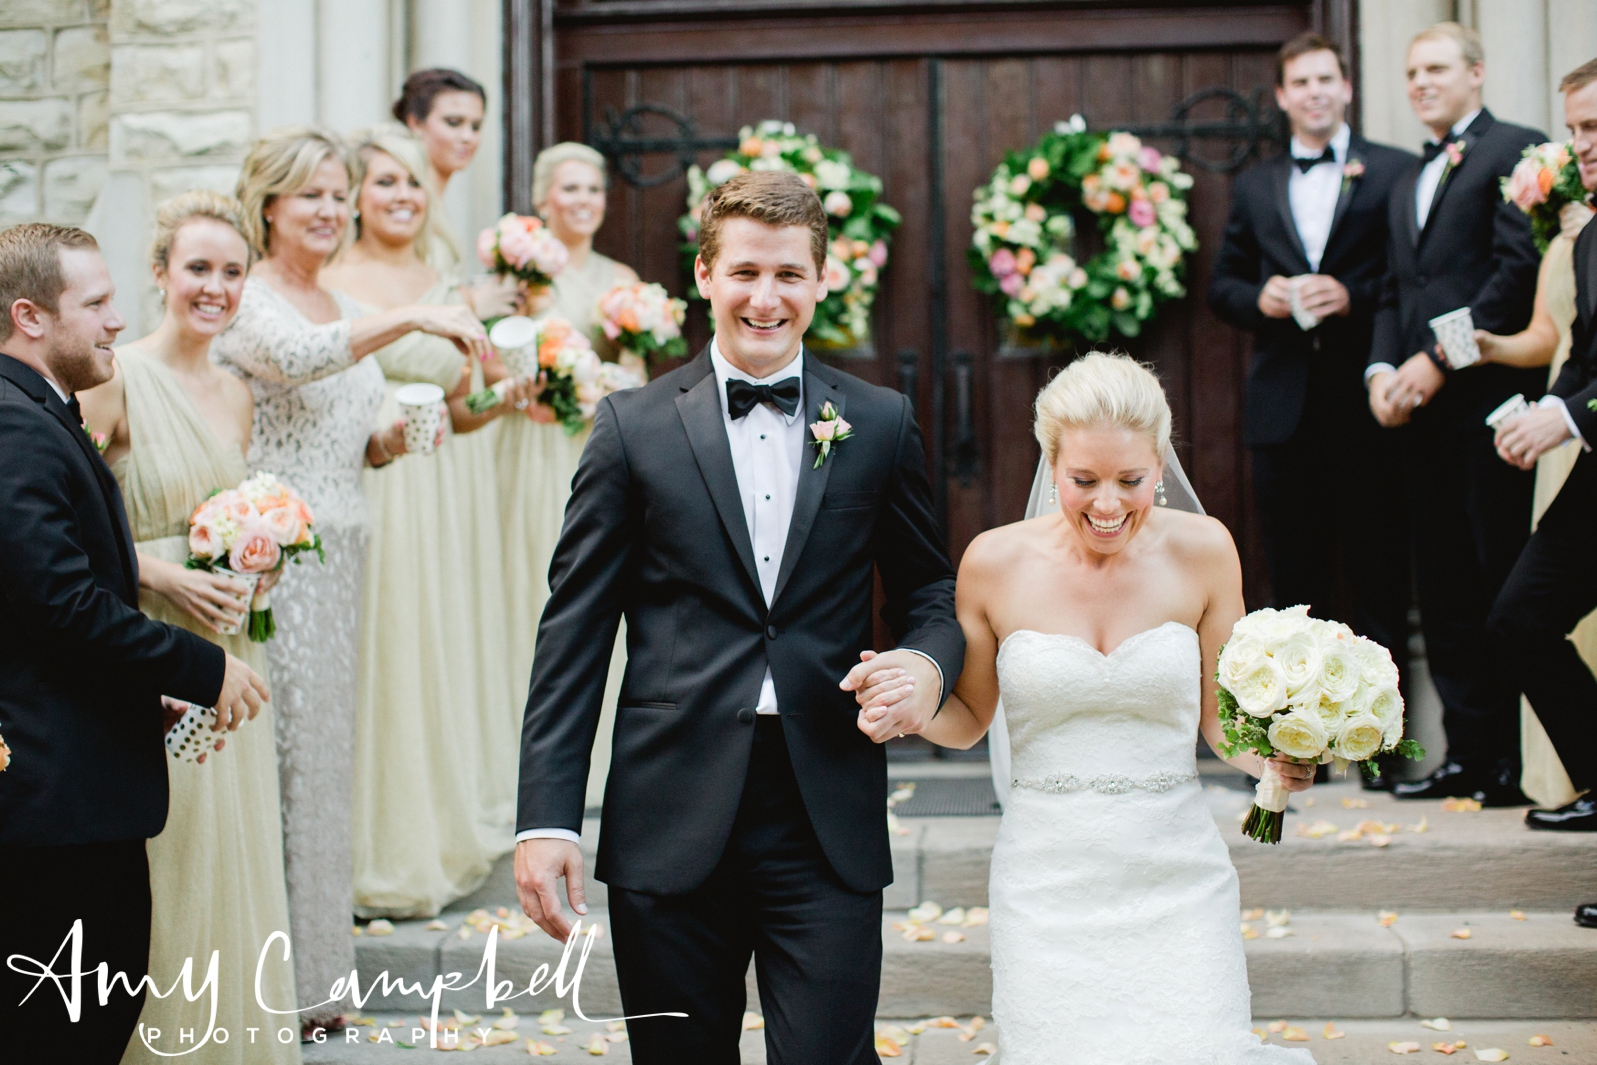 chelseamike_wedss_pics_amycampbellphotography_082.jpg